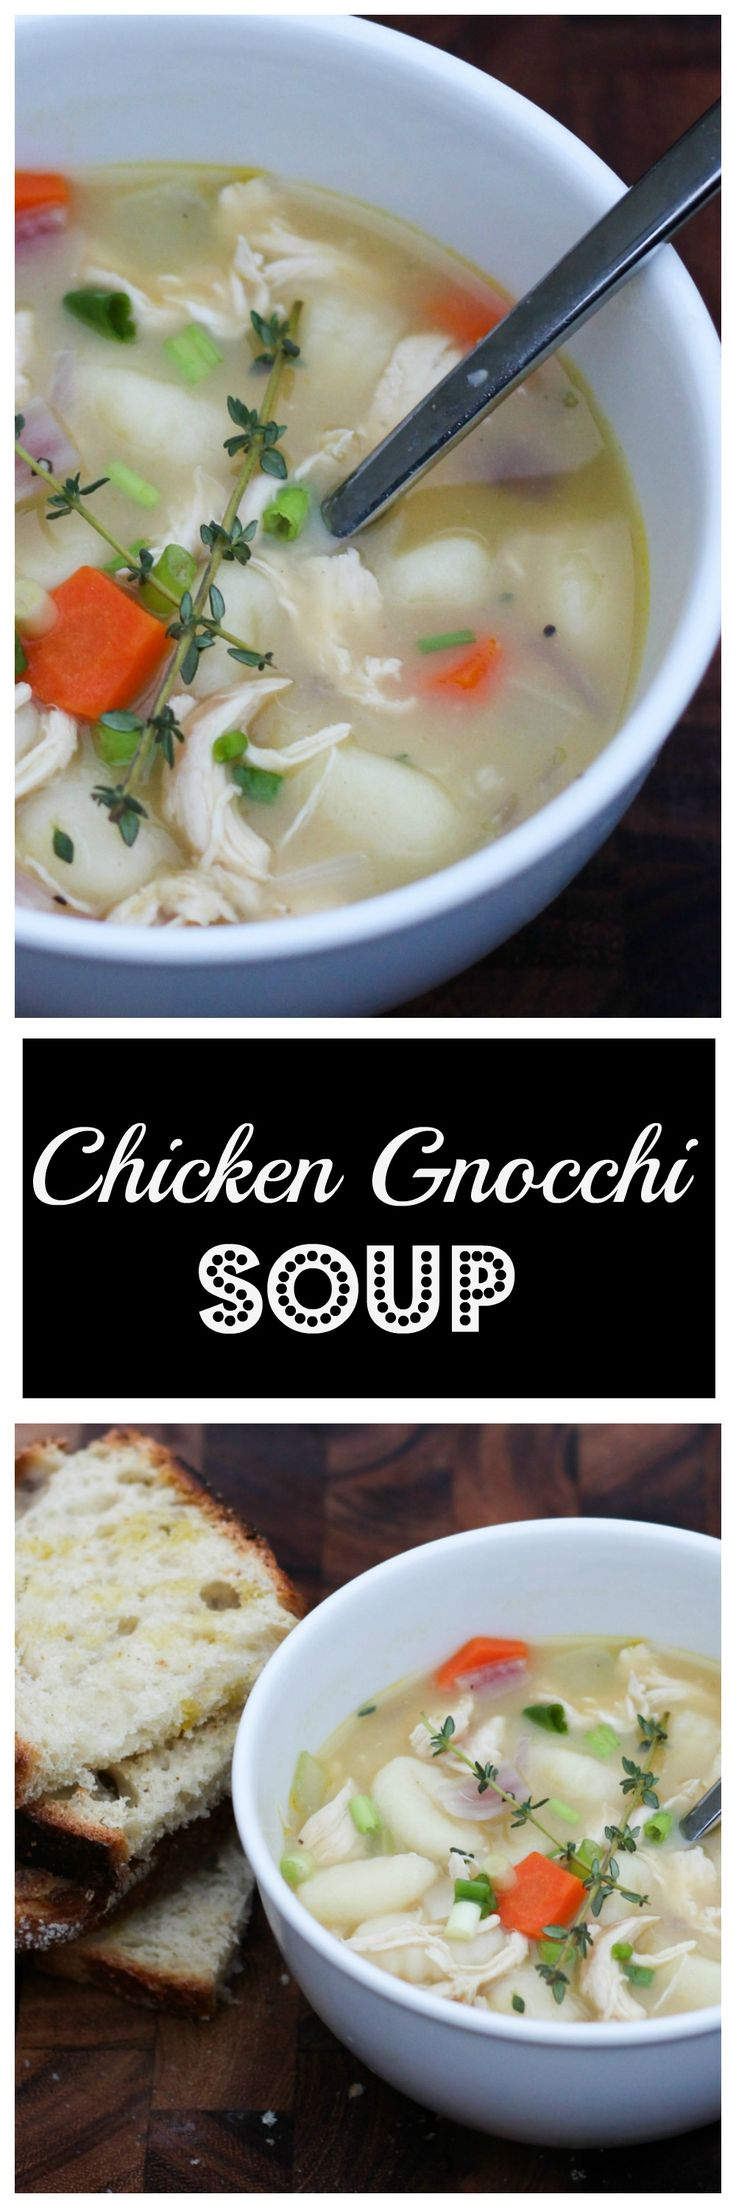 Chicken Gnocchi Soup - A twist on traditional chicken noodle soup. This is the ultimate comfort food!